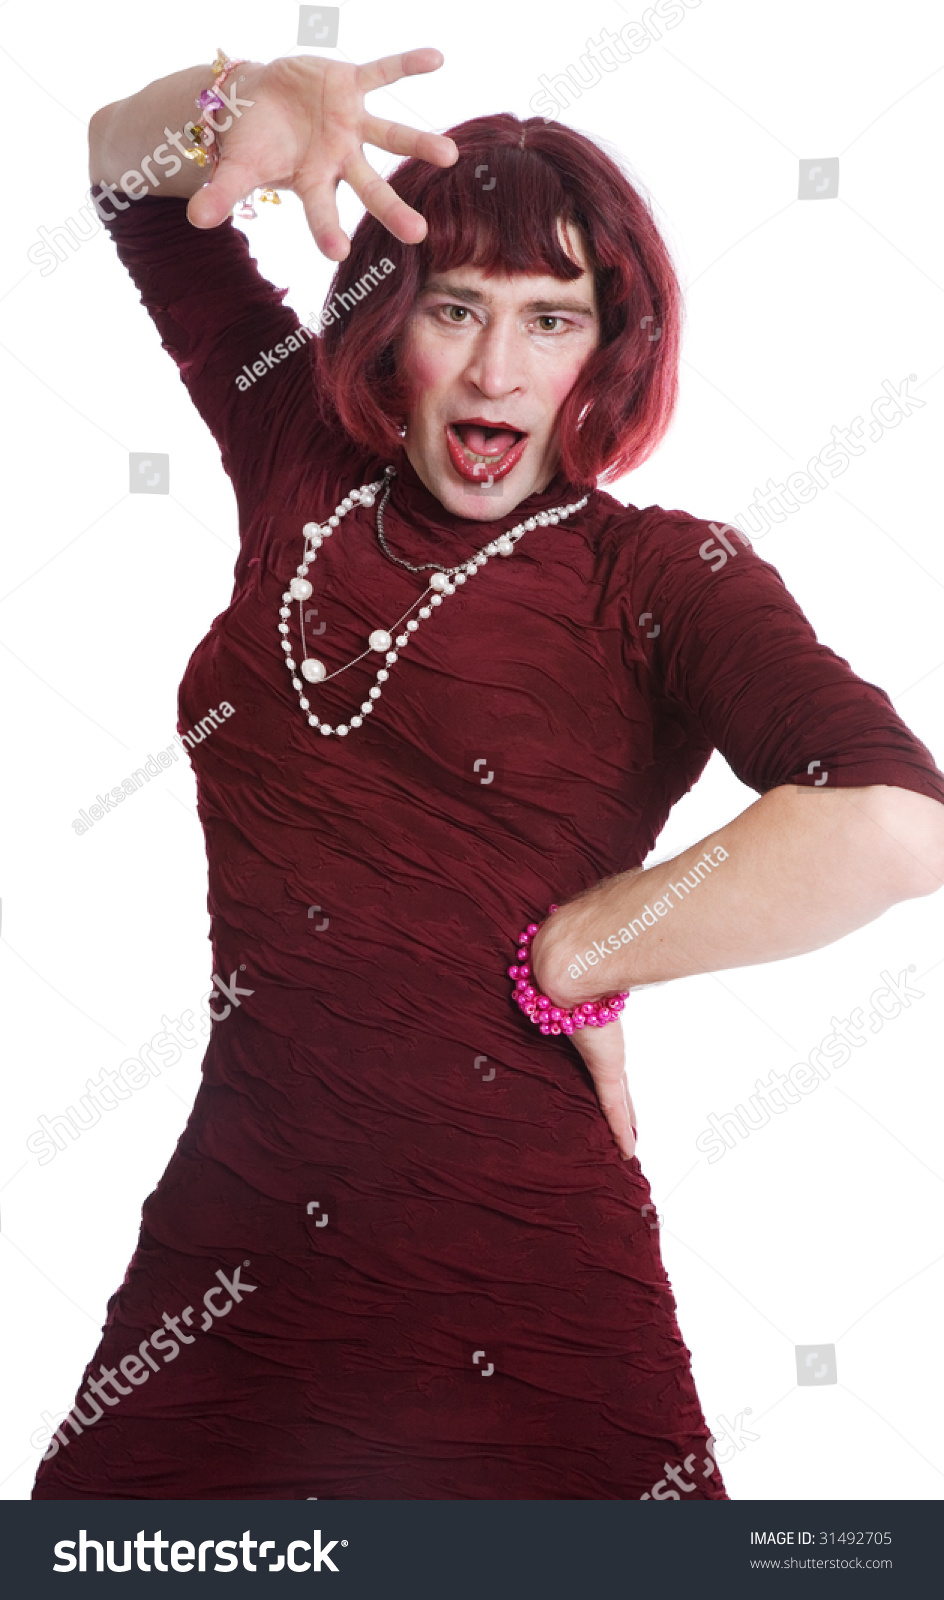 Creative A Man Dressed As A Woman Stock Photography - Image 12955842